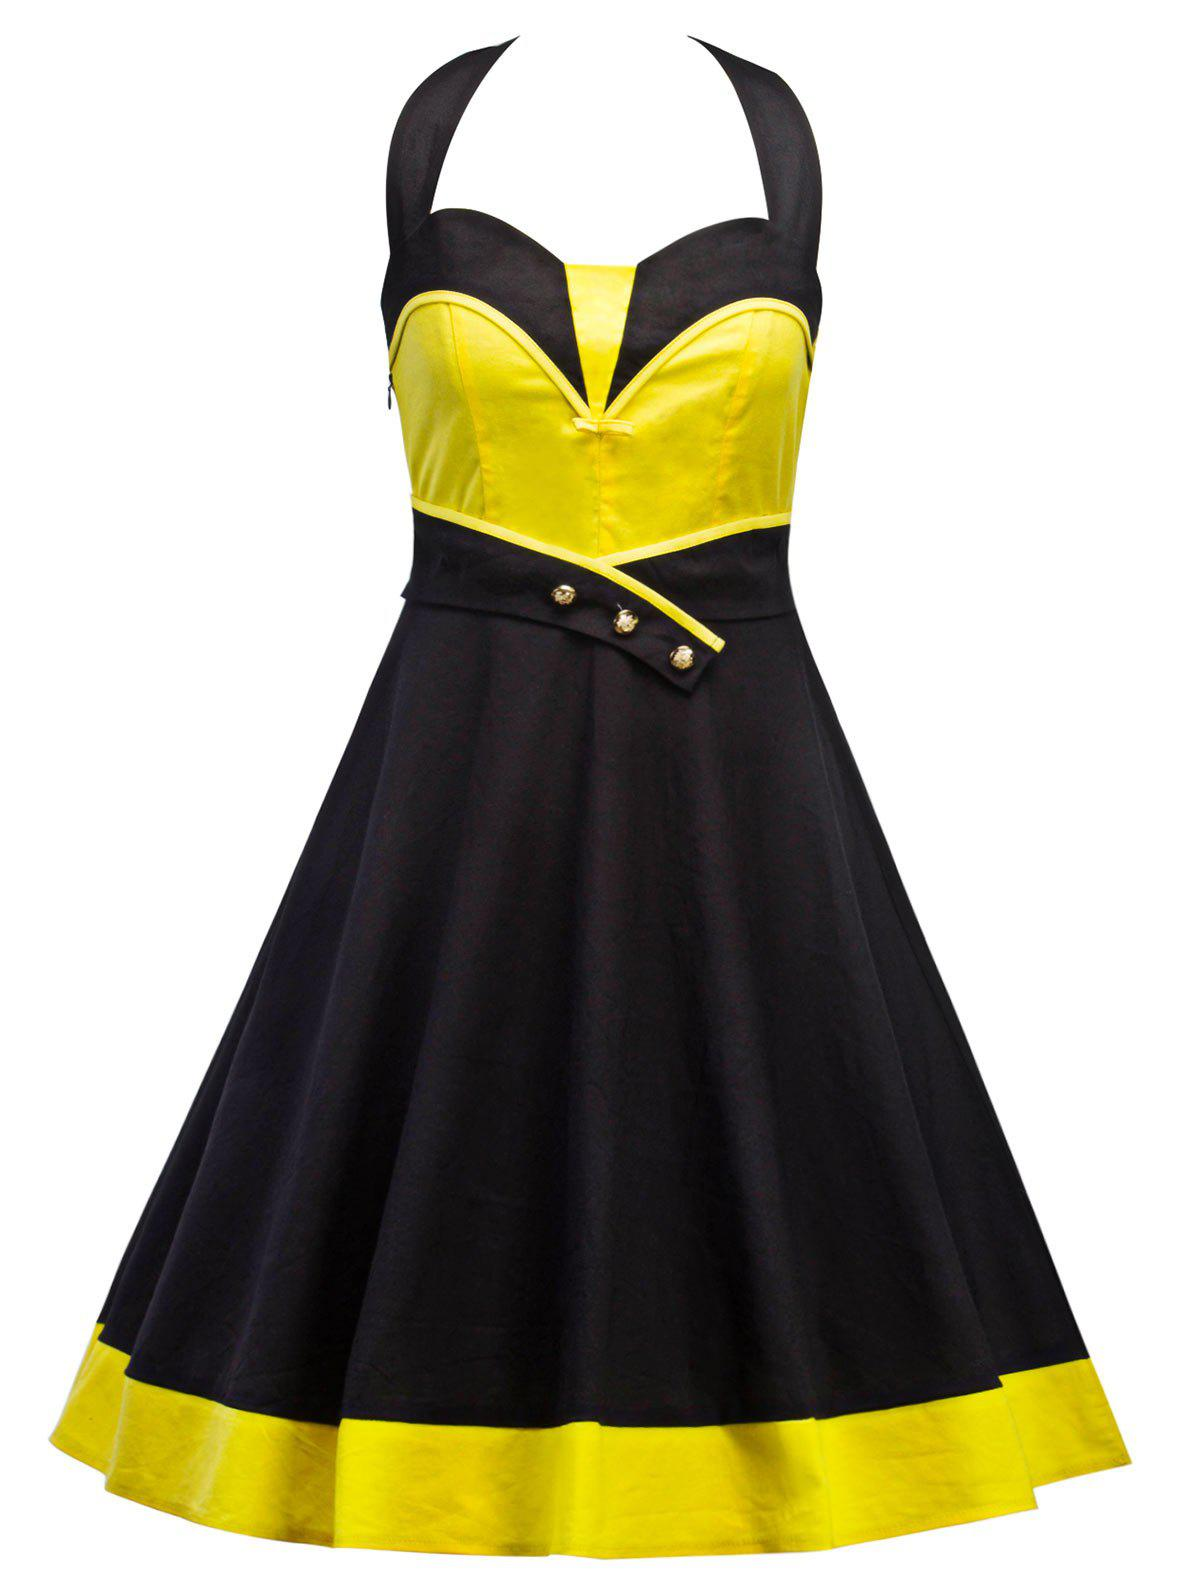 Vintage Halter Contraste Panel Dress - Jaune et Noir 2XL